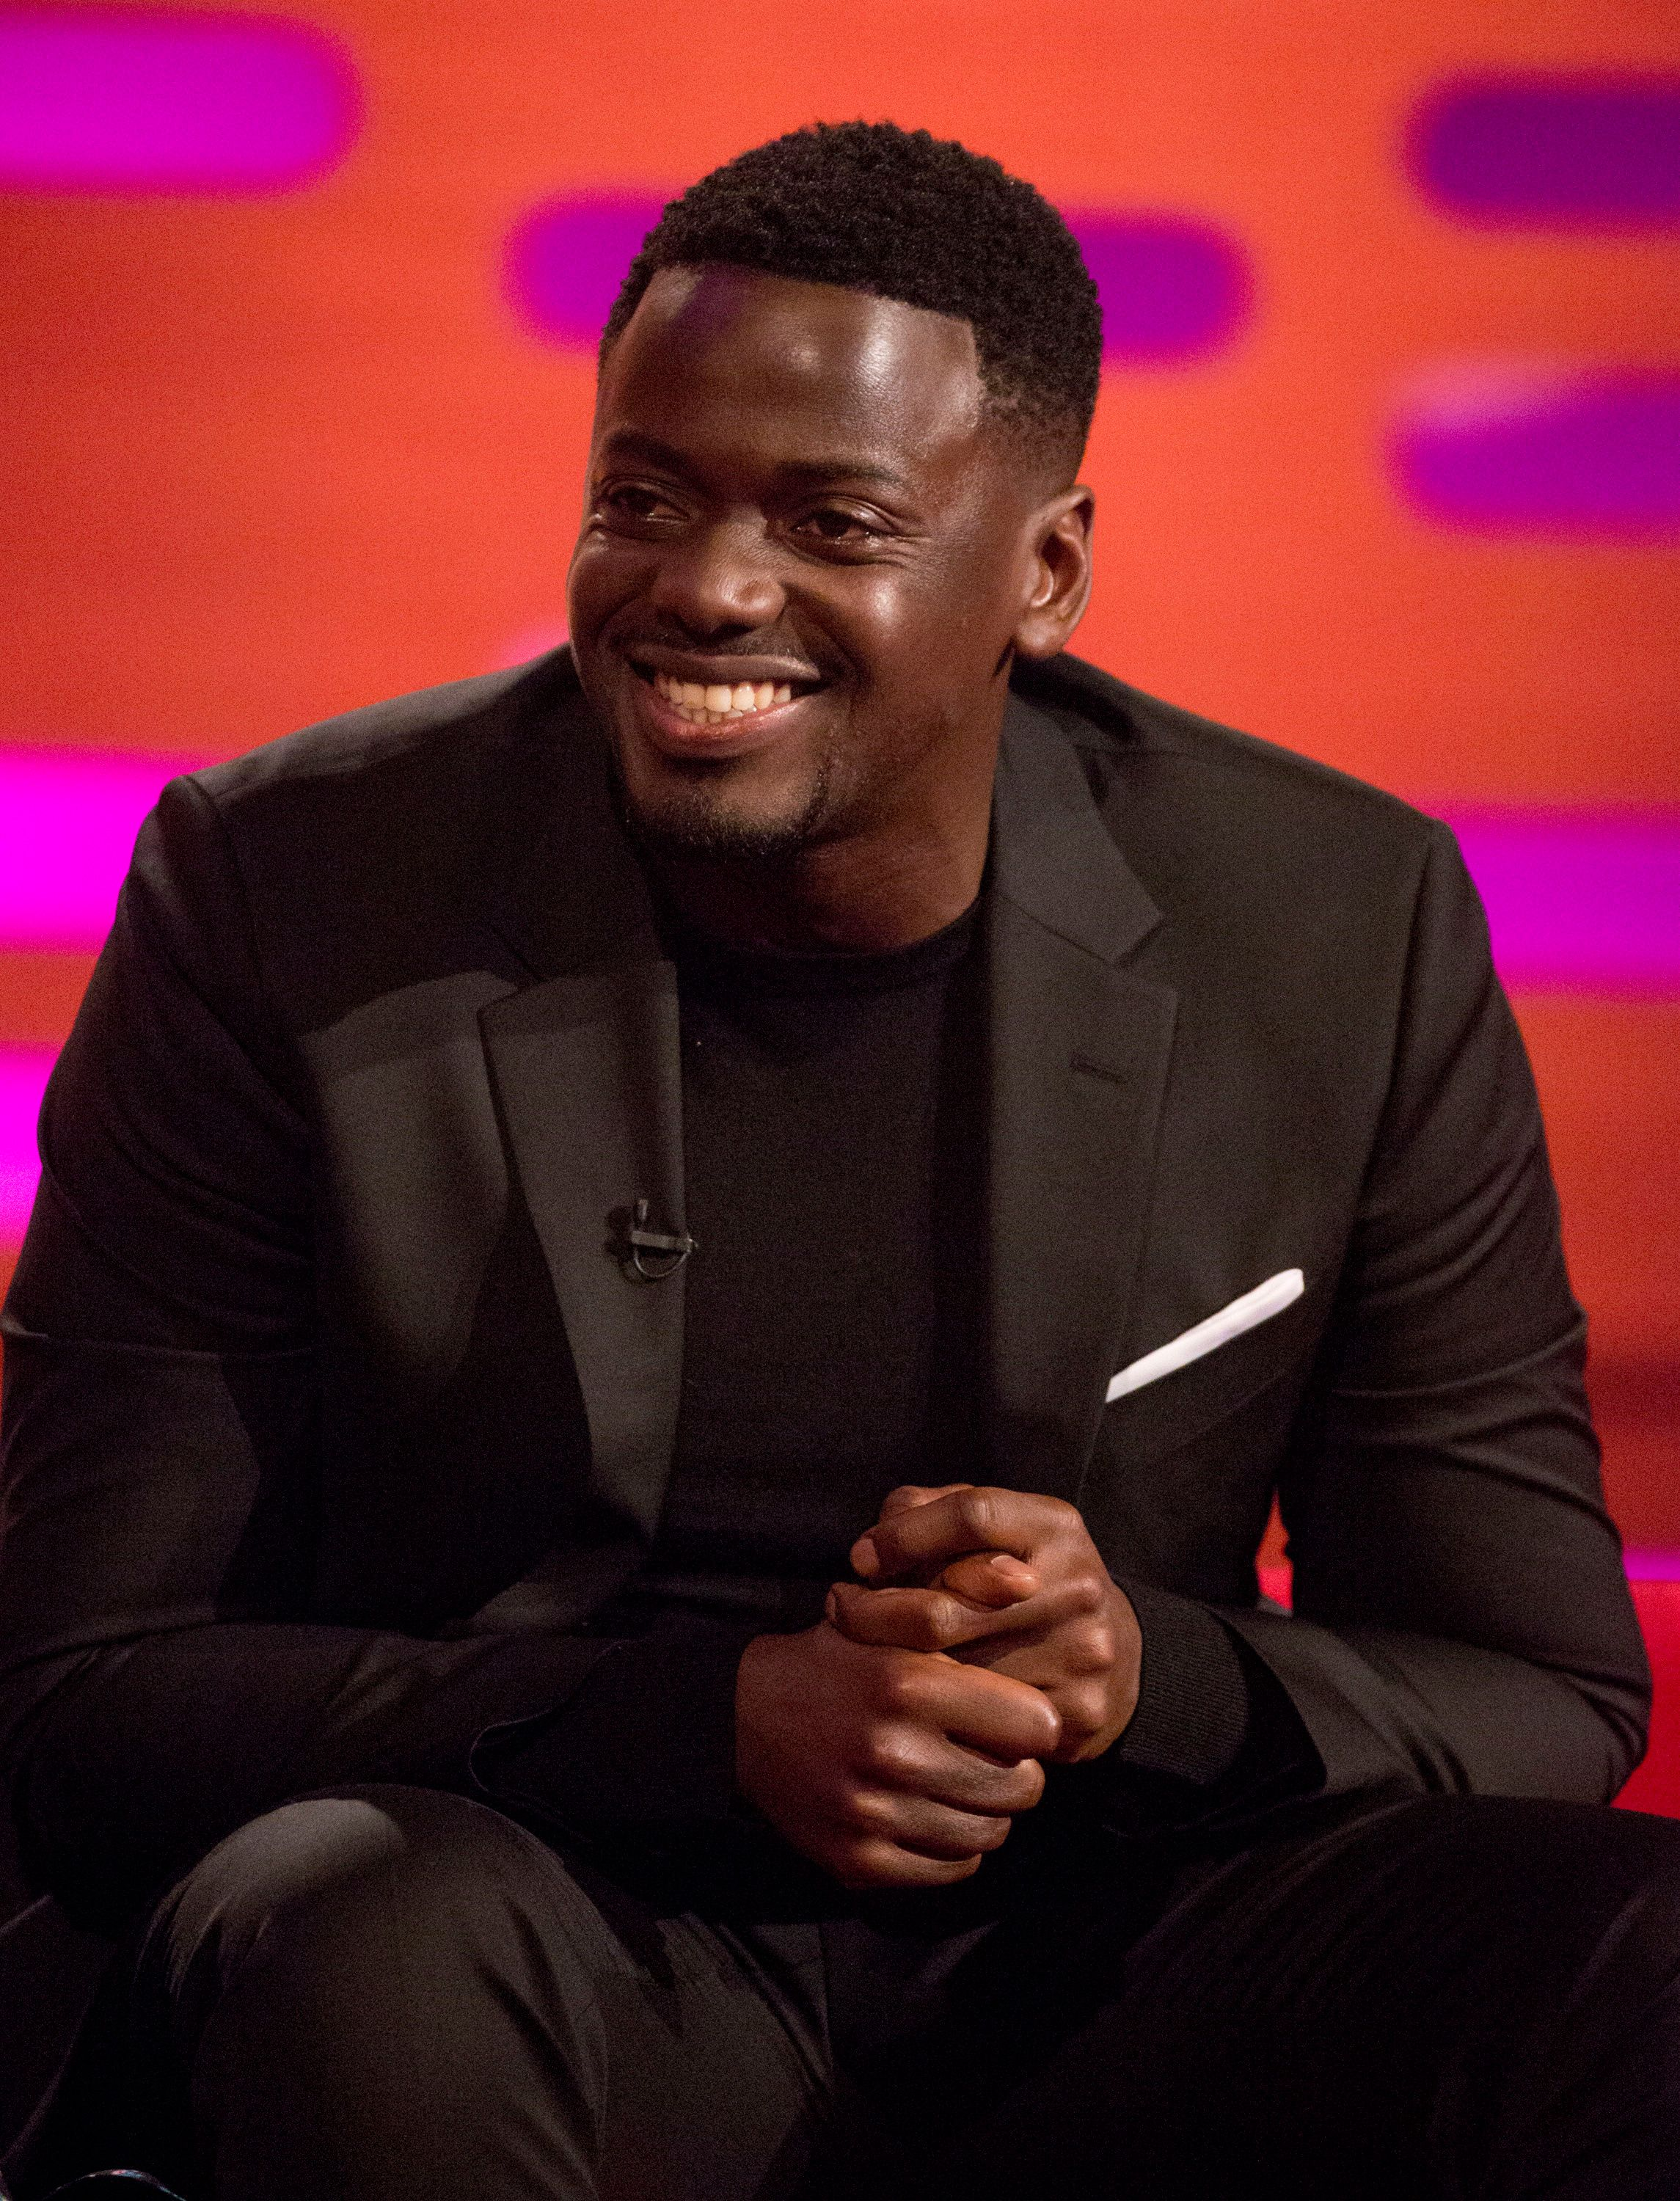 Daniel Kaluuya's Account Of Meeting Oprah Winfrey Is One Of The Purest Things On Earth